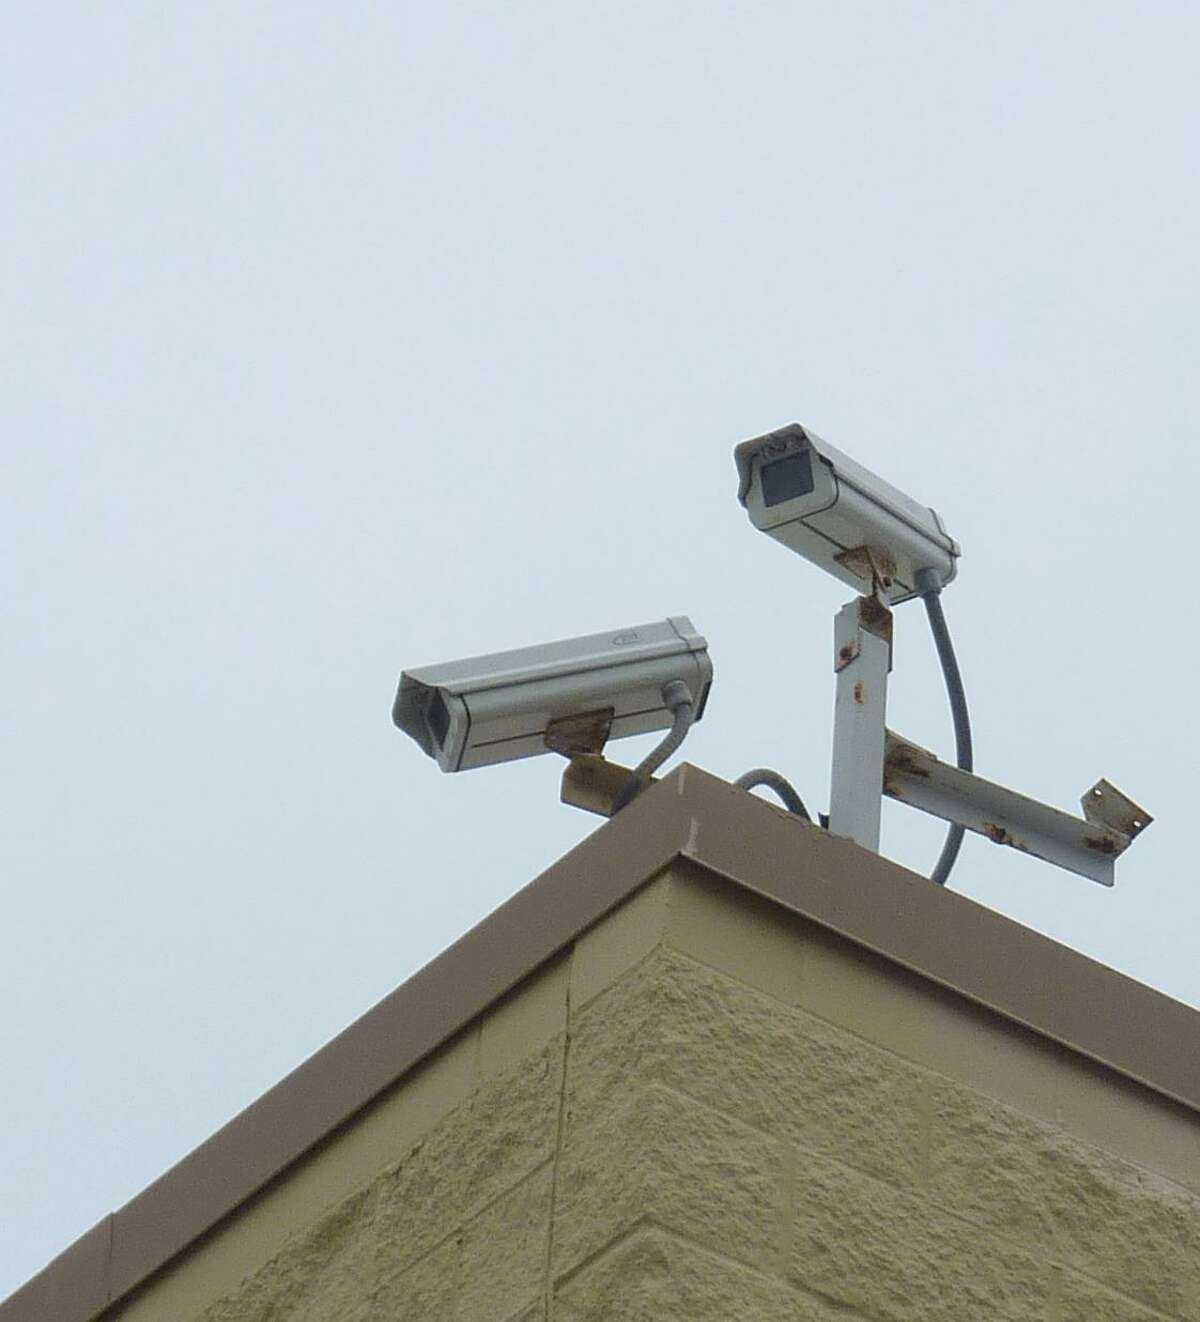 New Homeland Security surveillance cameras will be installed around The Woodlands by the end of March, according to officials with the Montgomery County Office of Homeland Security. The cameras, similar to these shown at a local Walmart, will be used to monitor special events and will record only photographic images, not sound.